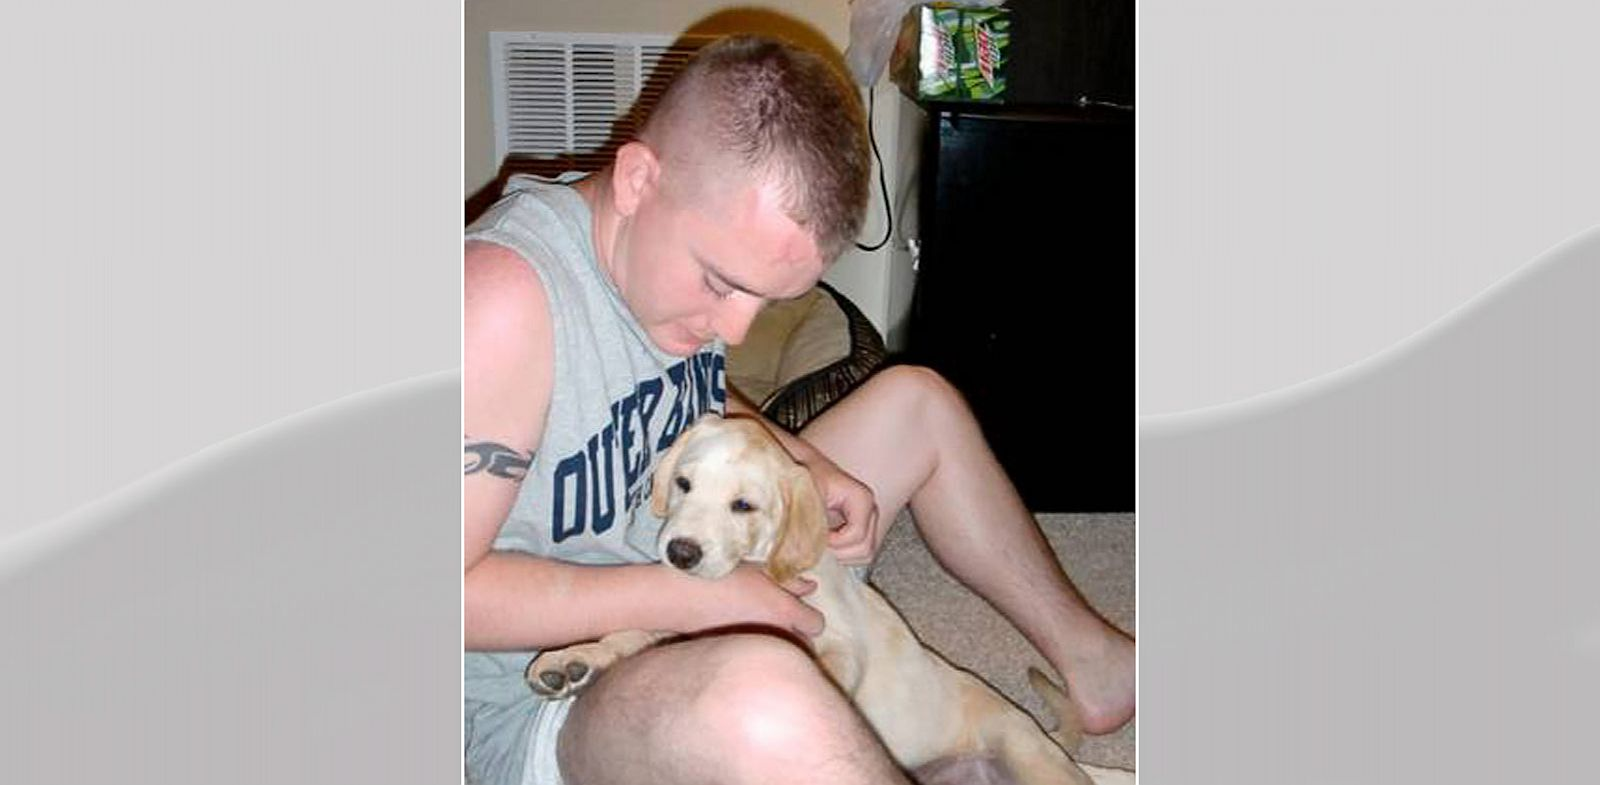 PHOTO: The dog of U.S. Army soldier, Brandon Harker, was given away when he was deployed to Afghanistan.